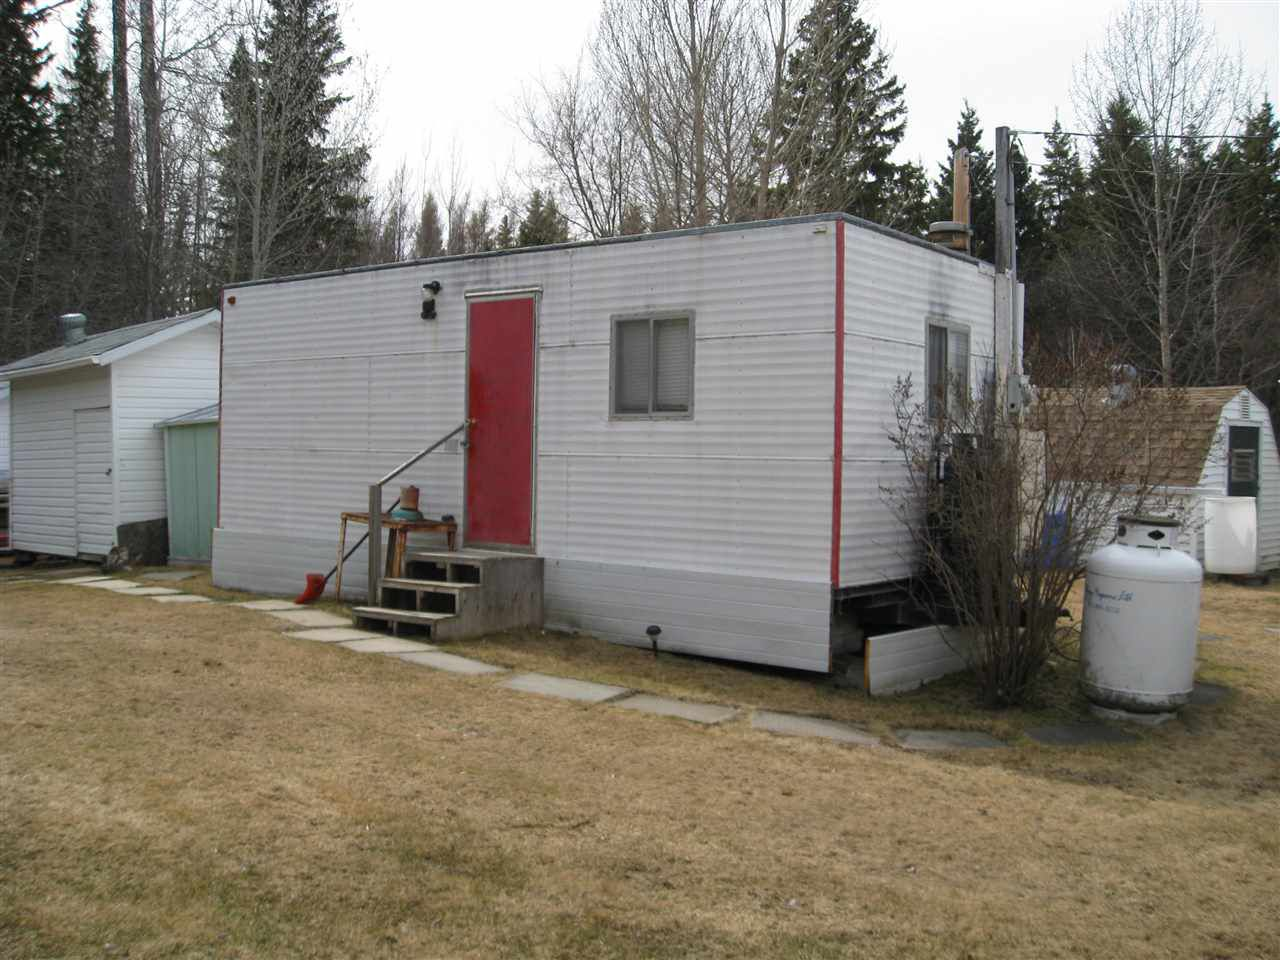 Main Photo: 81, 4418 Hwy 633: Rural Lac Ste. Anne County Rural Land/Vacant Lot for sale : MLS®# E4153079